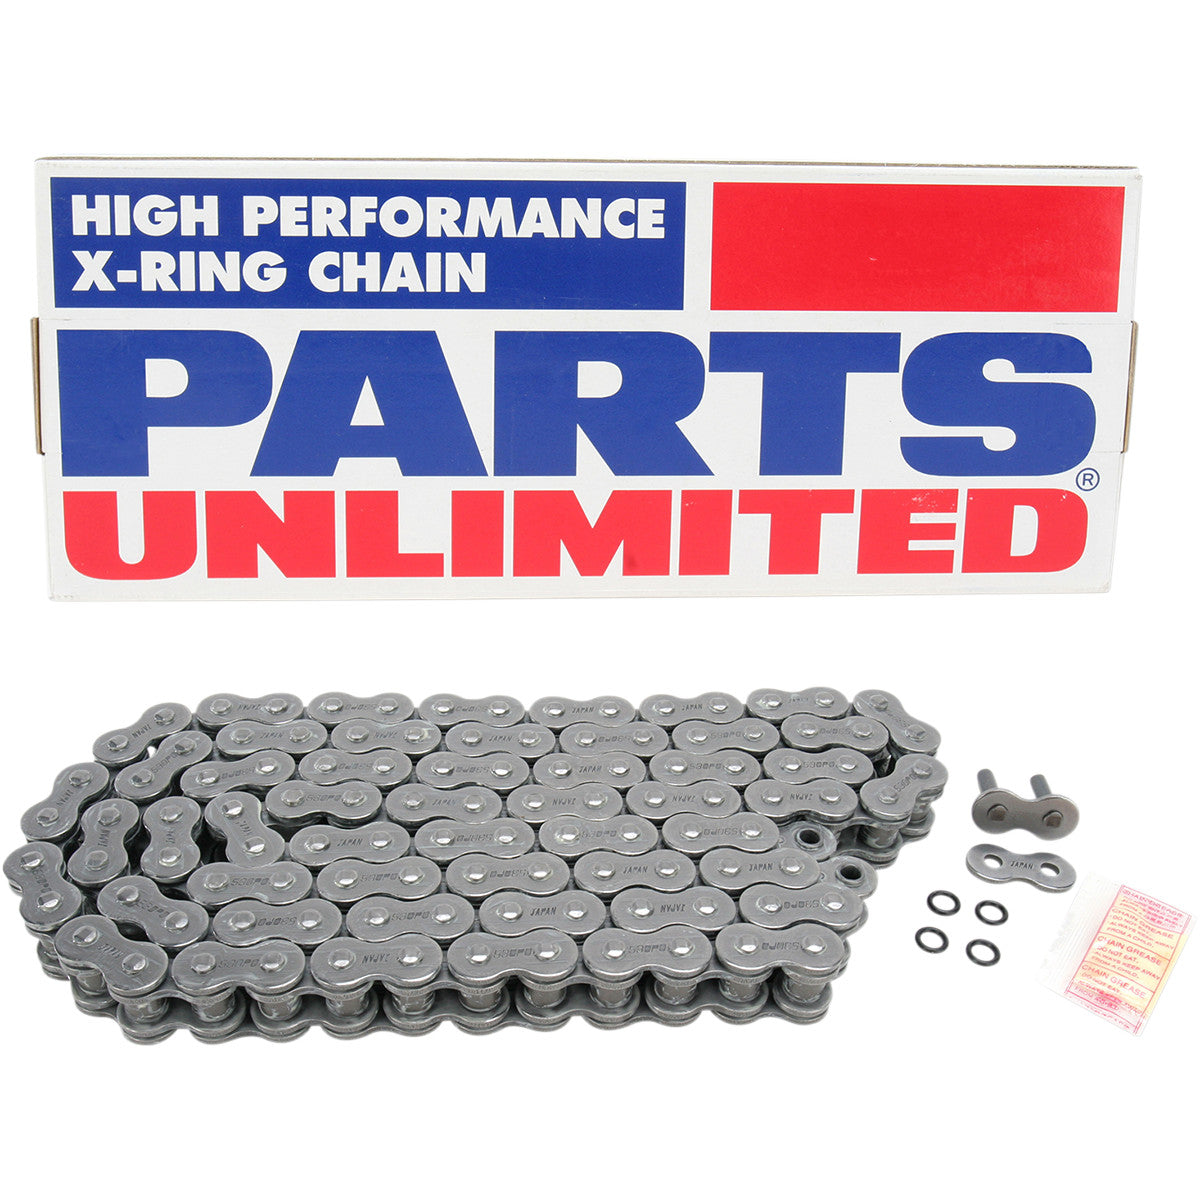 PARTS UNLIMITED-CHAIN CHAIN PU 530 X-RNG X 130L